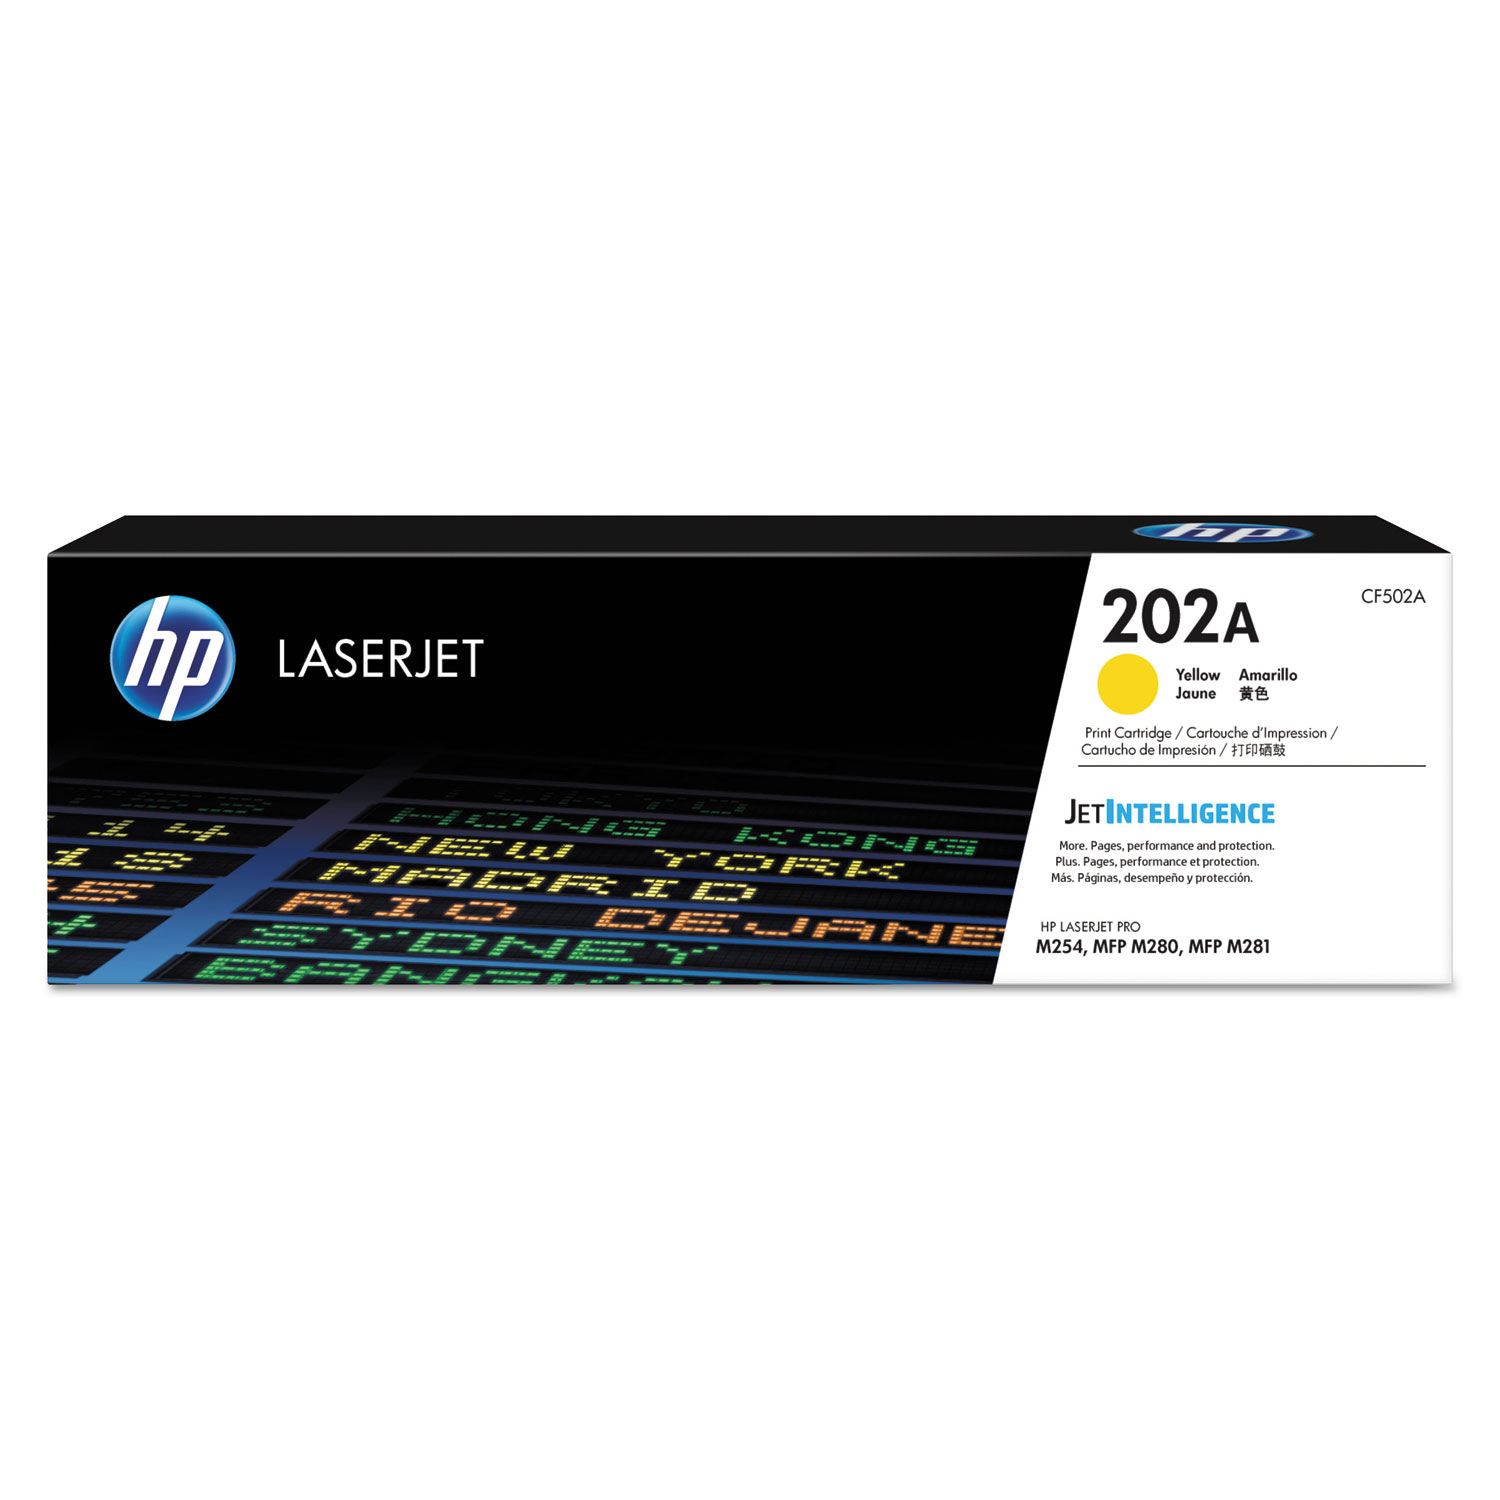 HP 202A CF502A Yellow Original Toner, 1300 Page-Yield